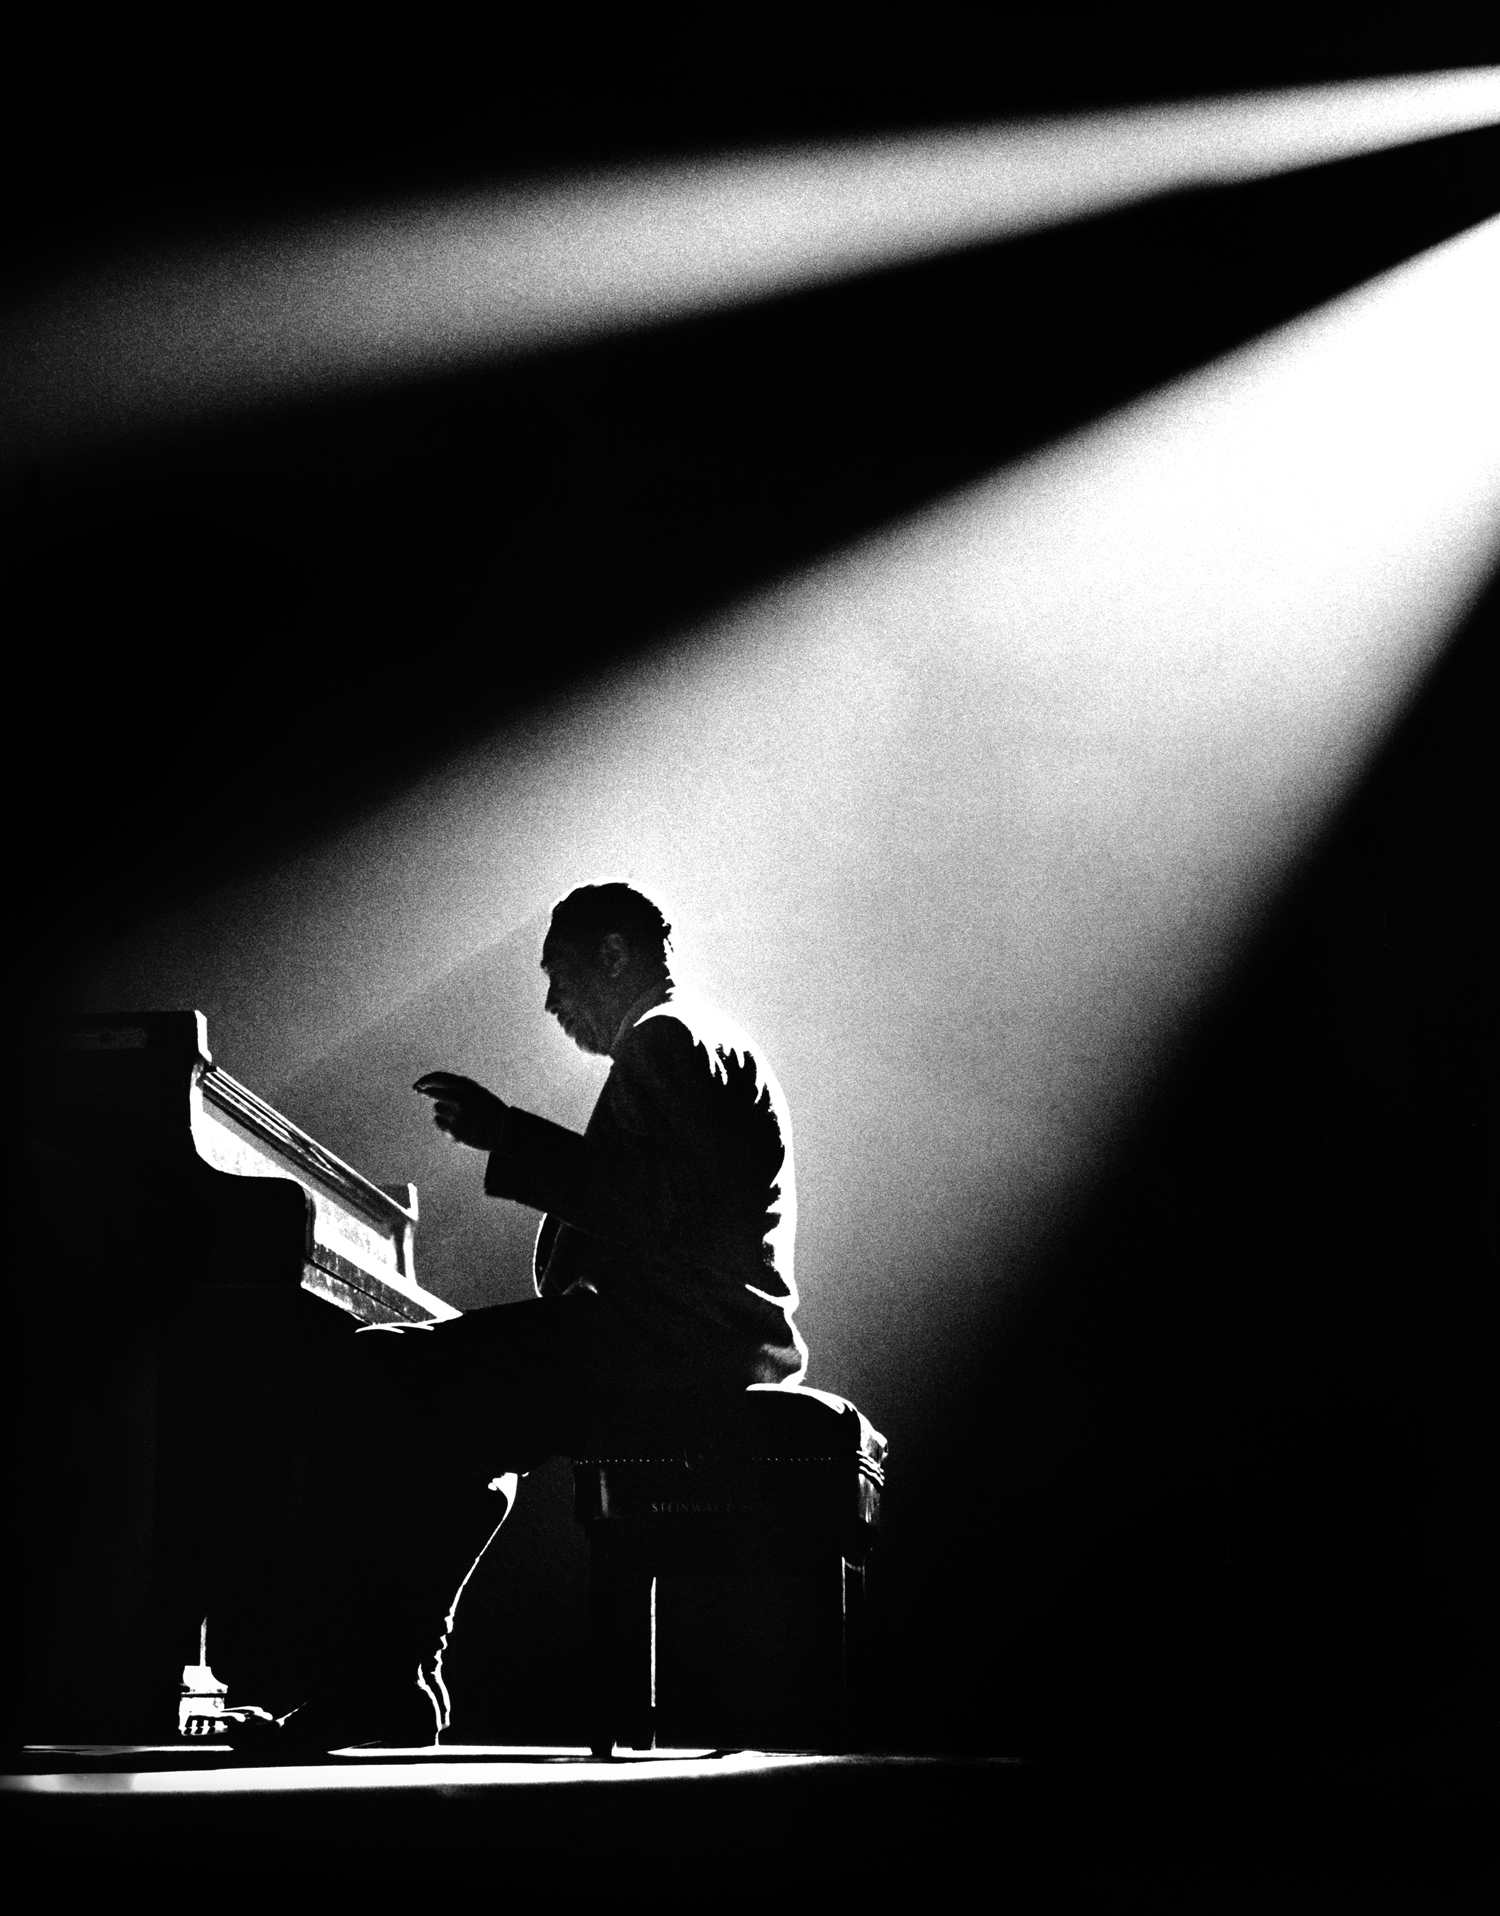 Black and white photo of pianist in silhouette